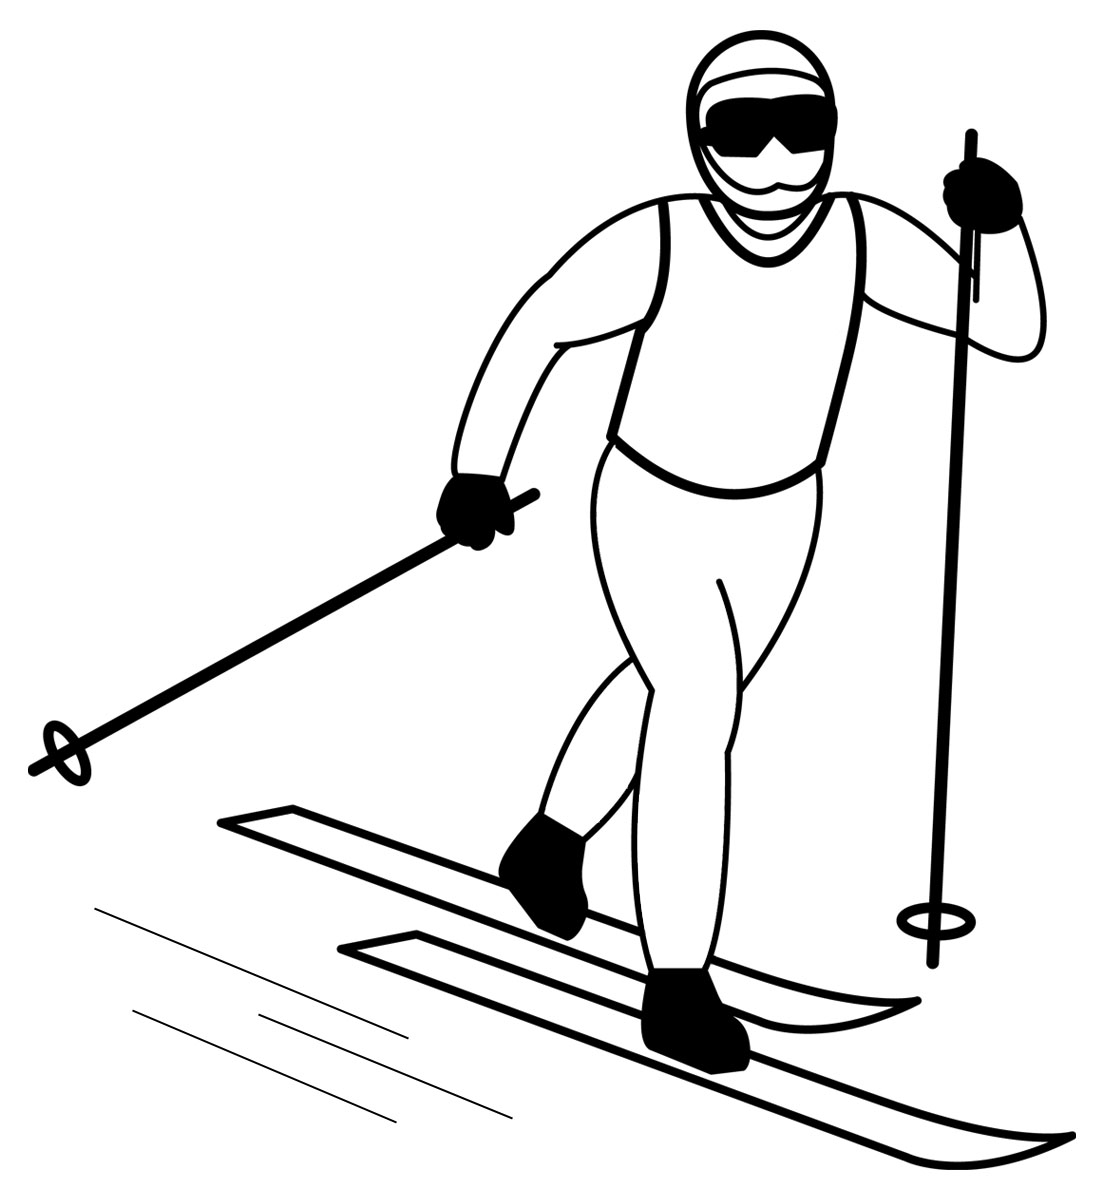 Skis clipart cross country skis. Clip art skiing panda